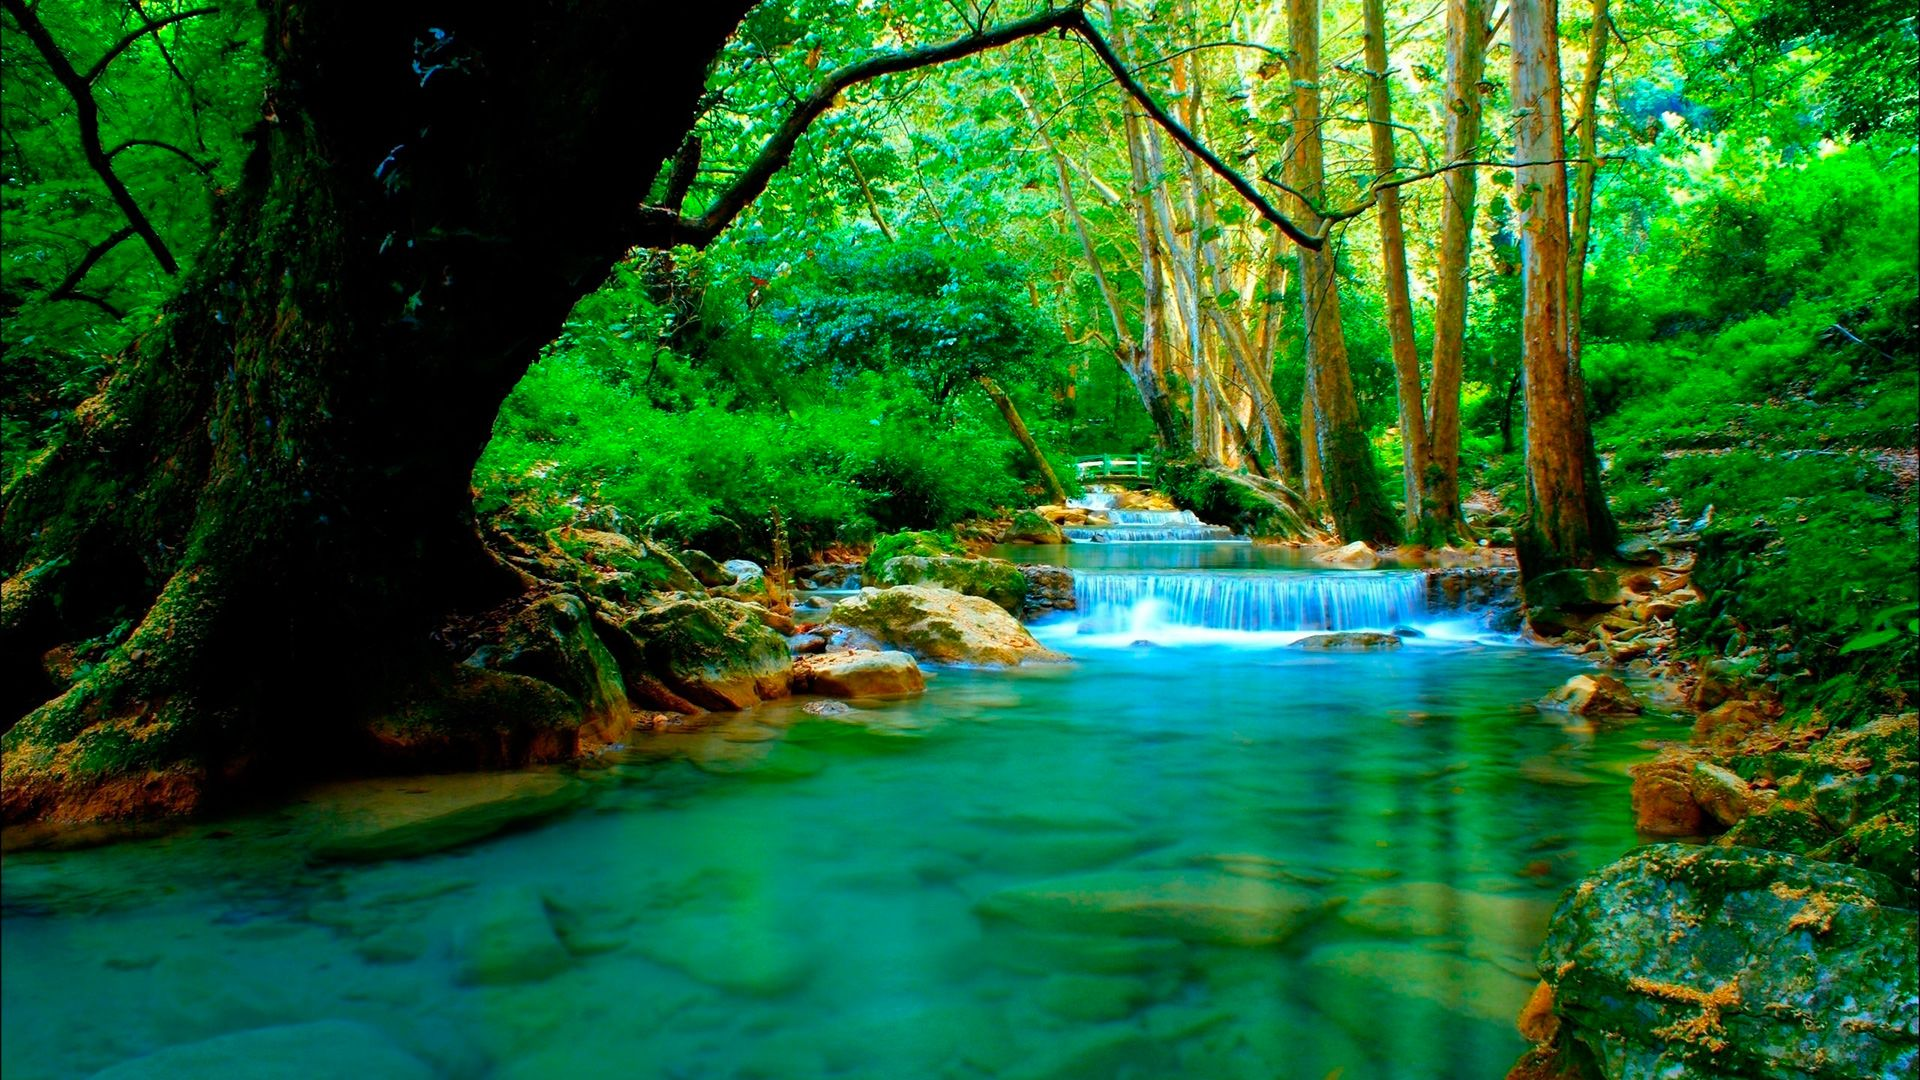 The Wallpaper River In Forest